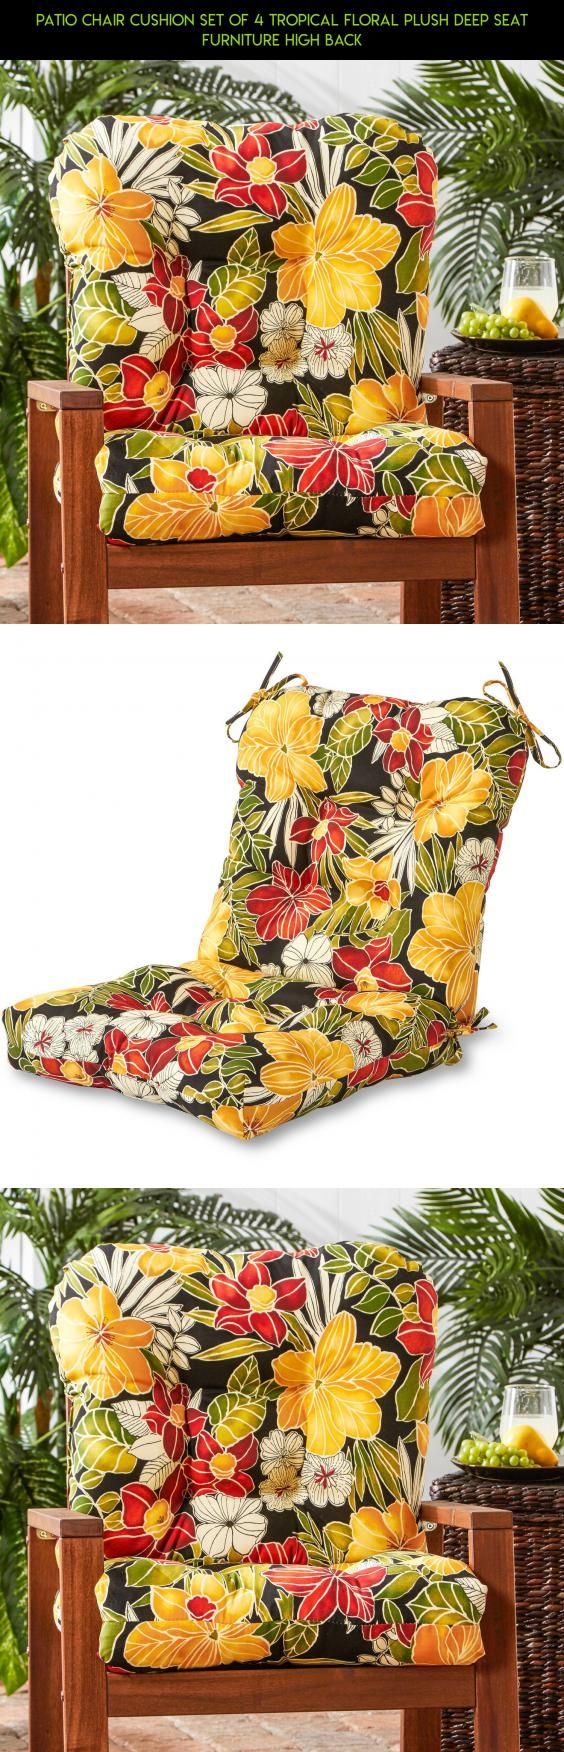 Best 25+ Tropical Seat Cushions Ideas On Pinterest | Tropical Interior,  Garden Bench Seat And Small Lounge Rooms